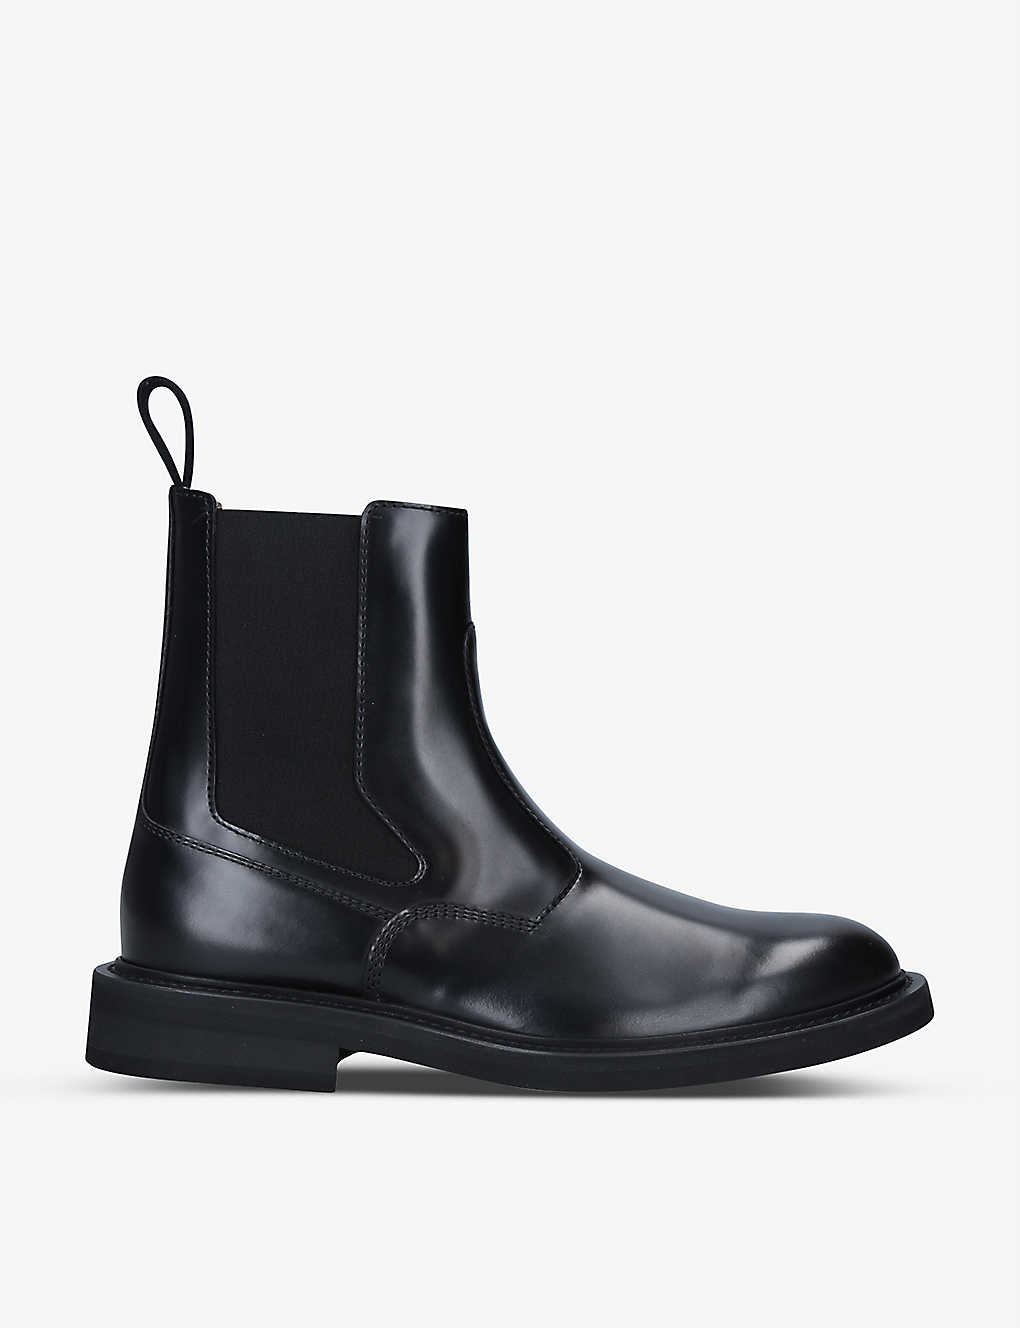 BOTTEGA VENETA: BV Level leather Chelsea boots